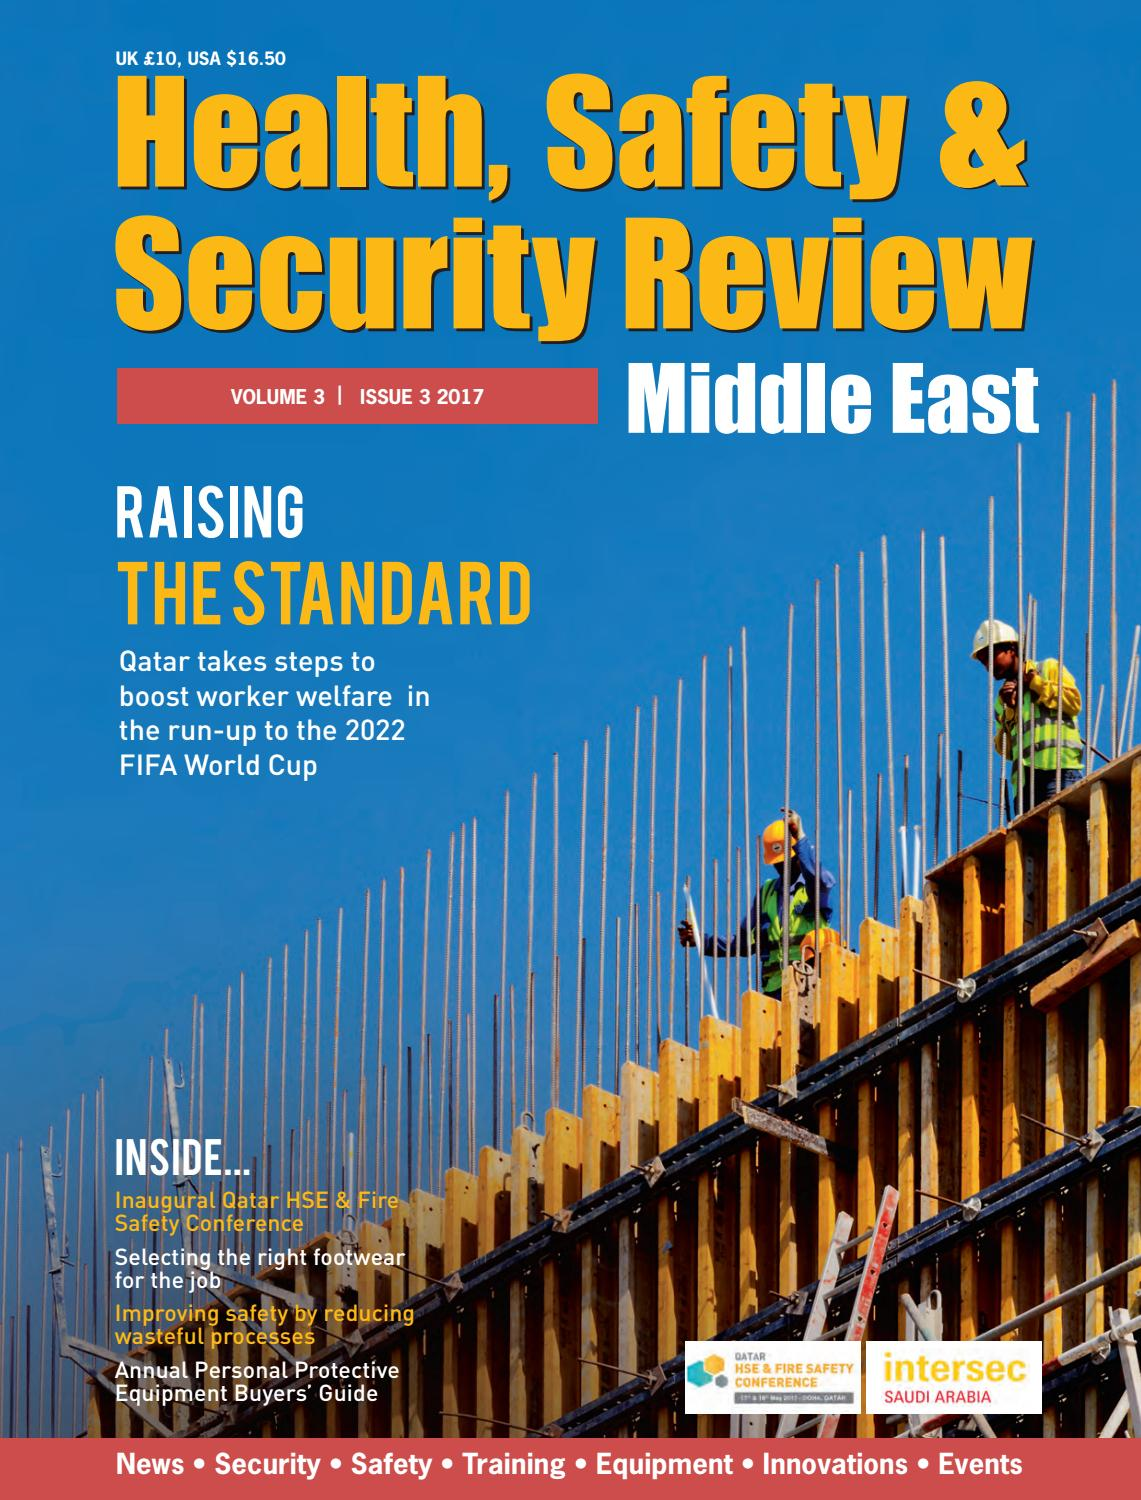 Health Safety  Security Review issue 3 2017 by Alain